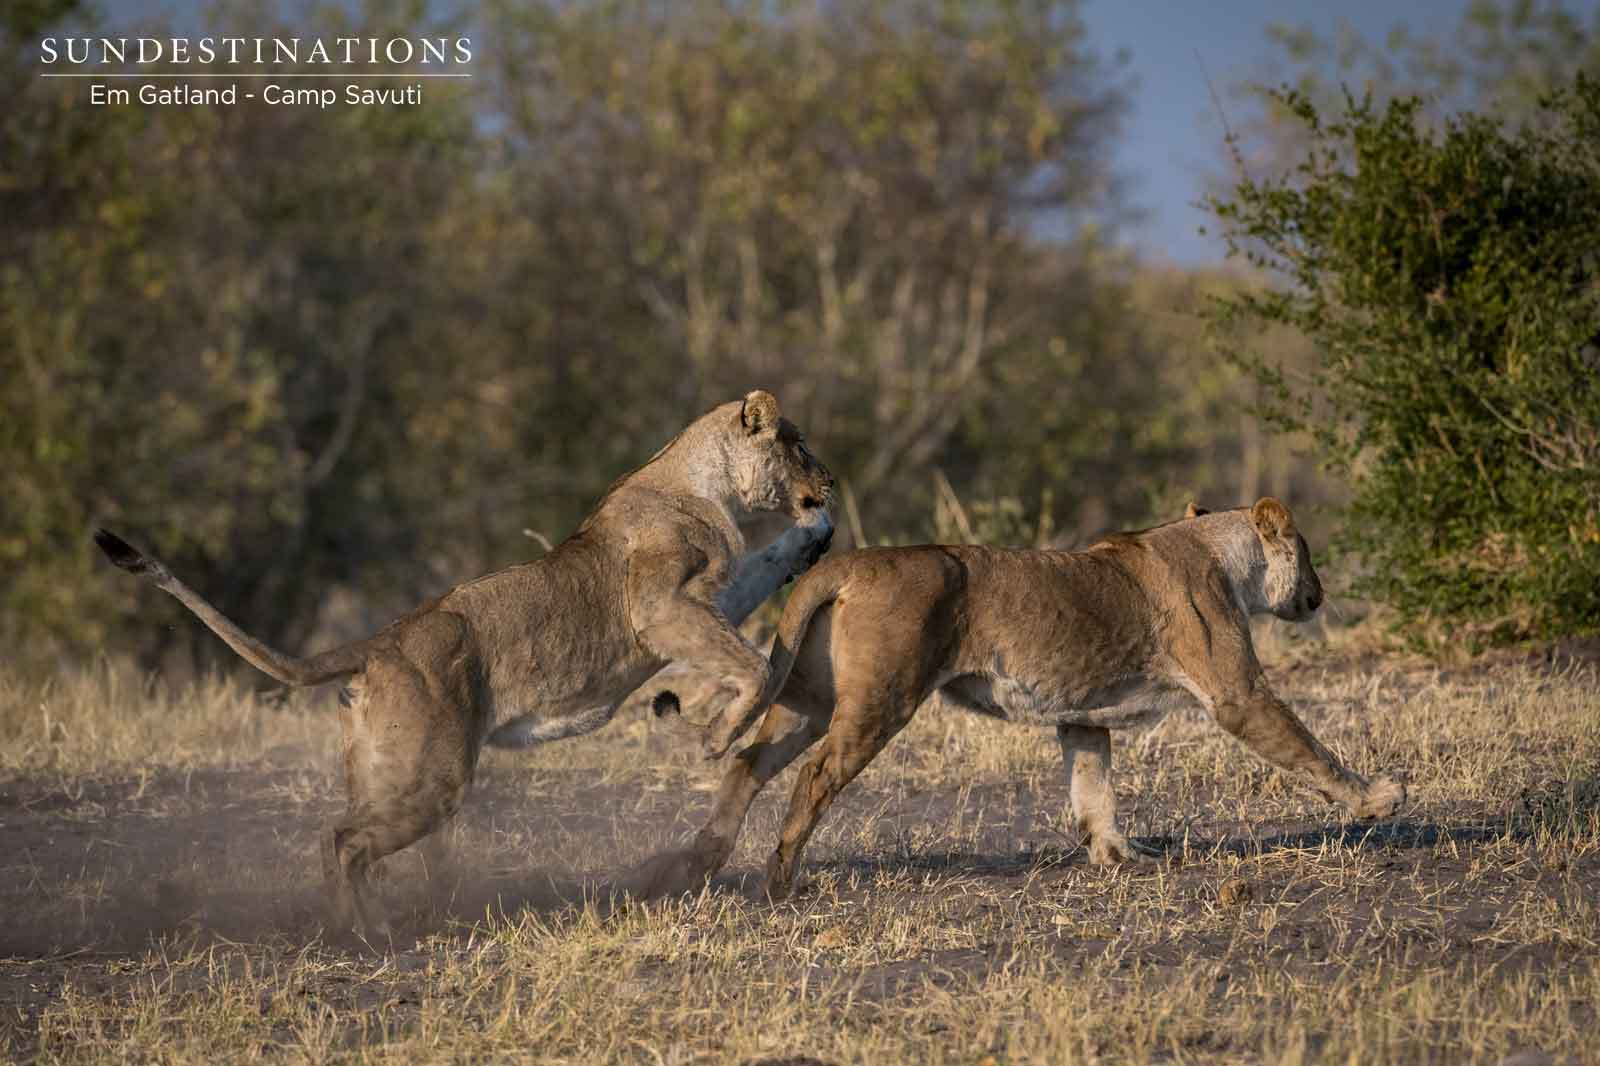 Lionesses in Camp Savuti